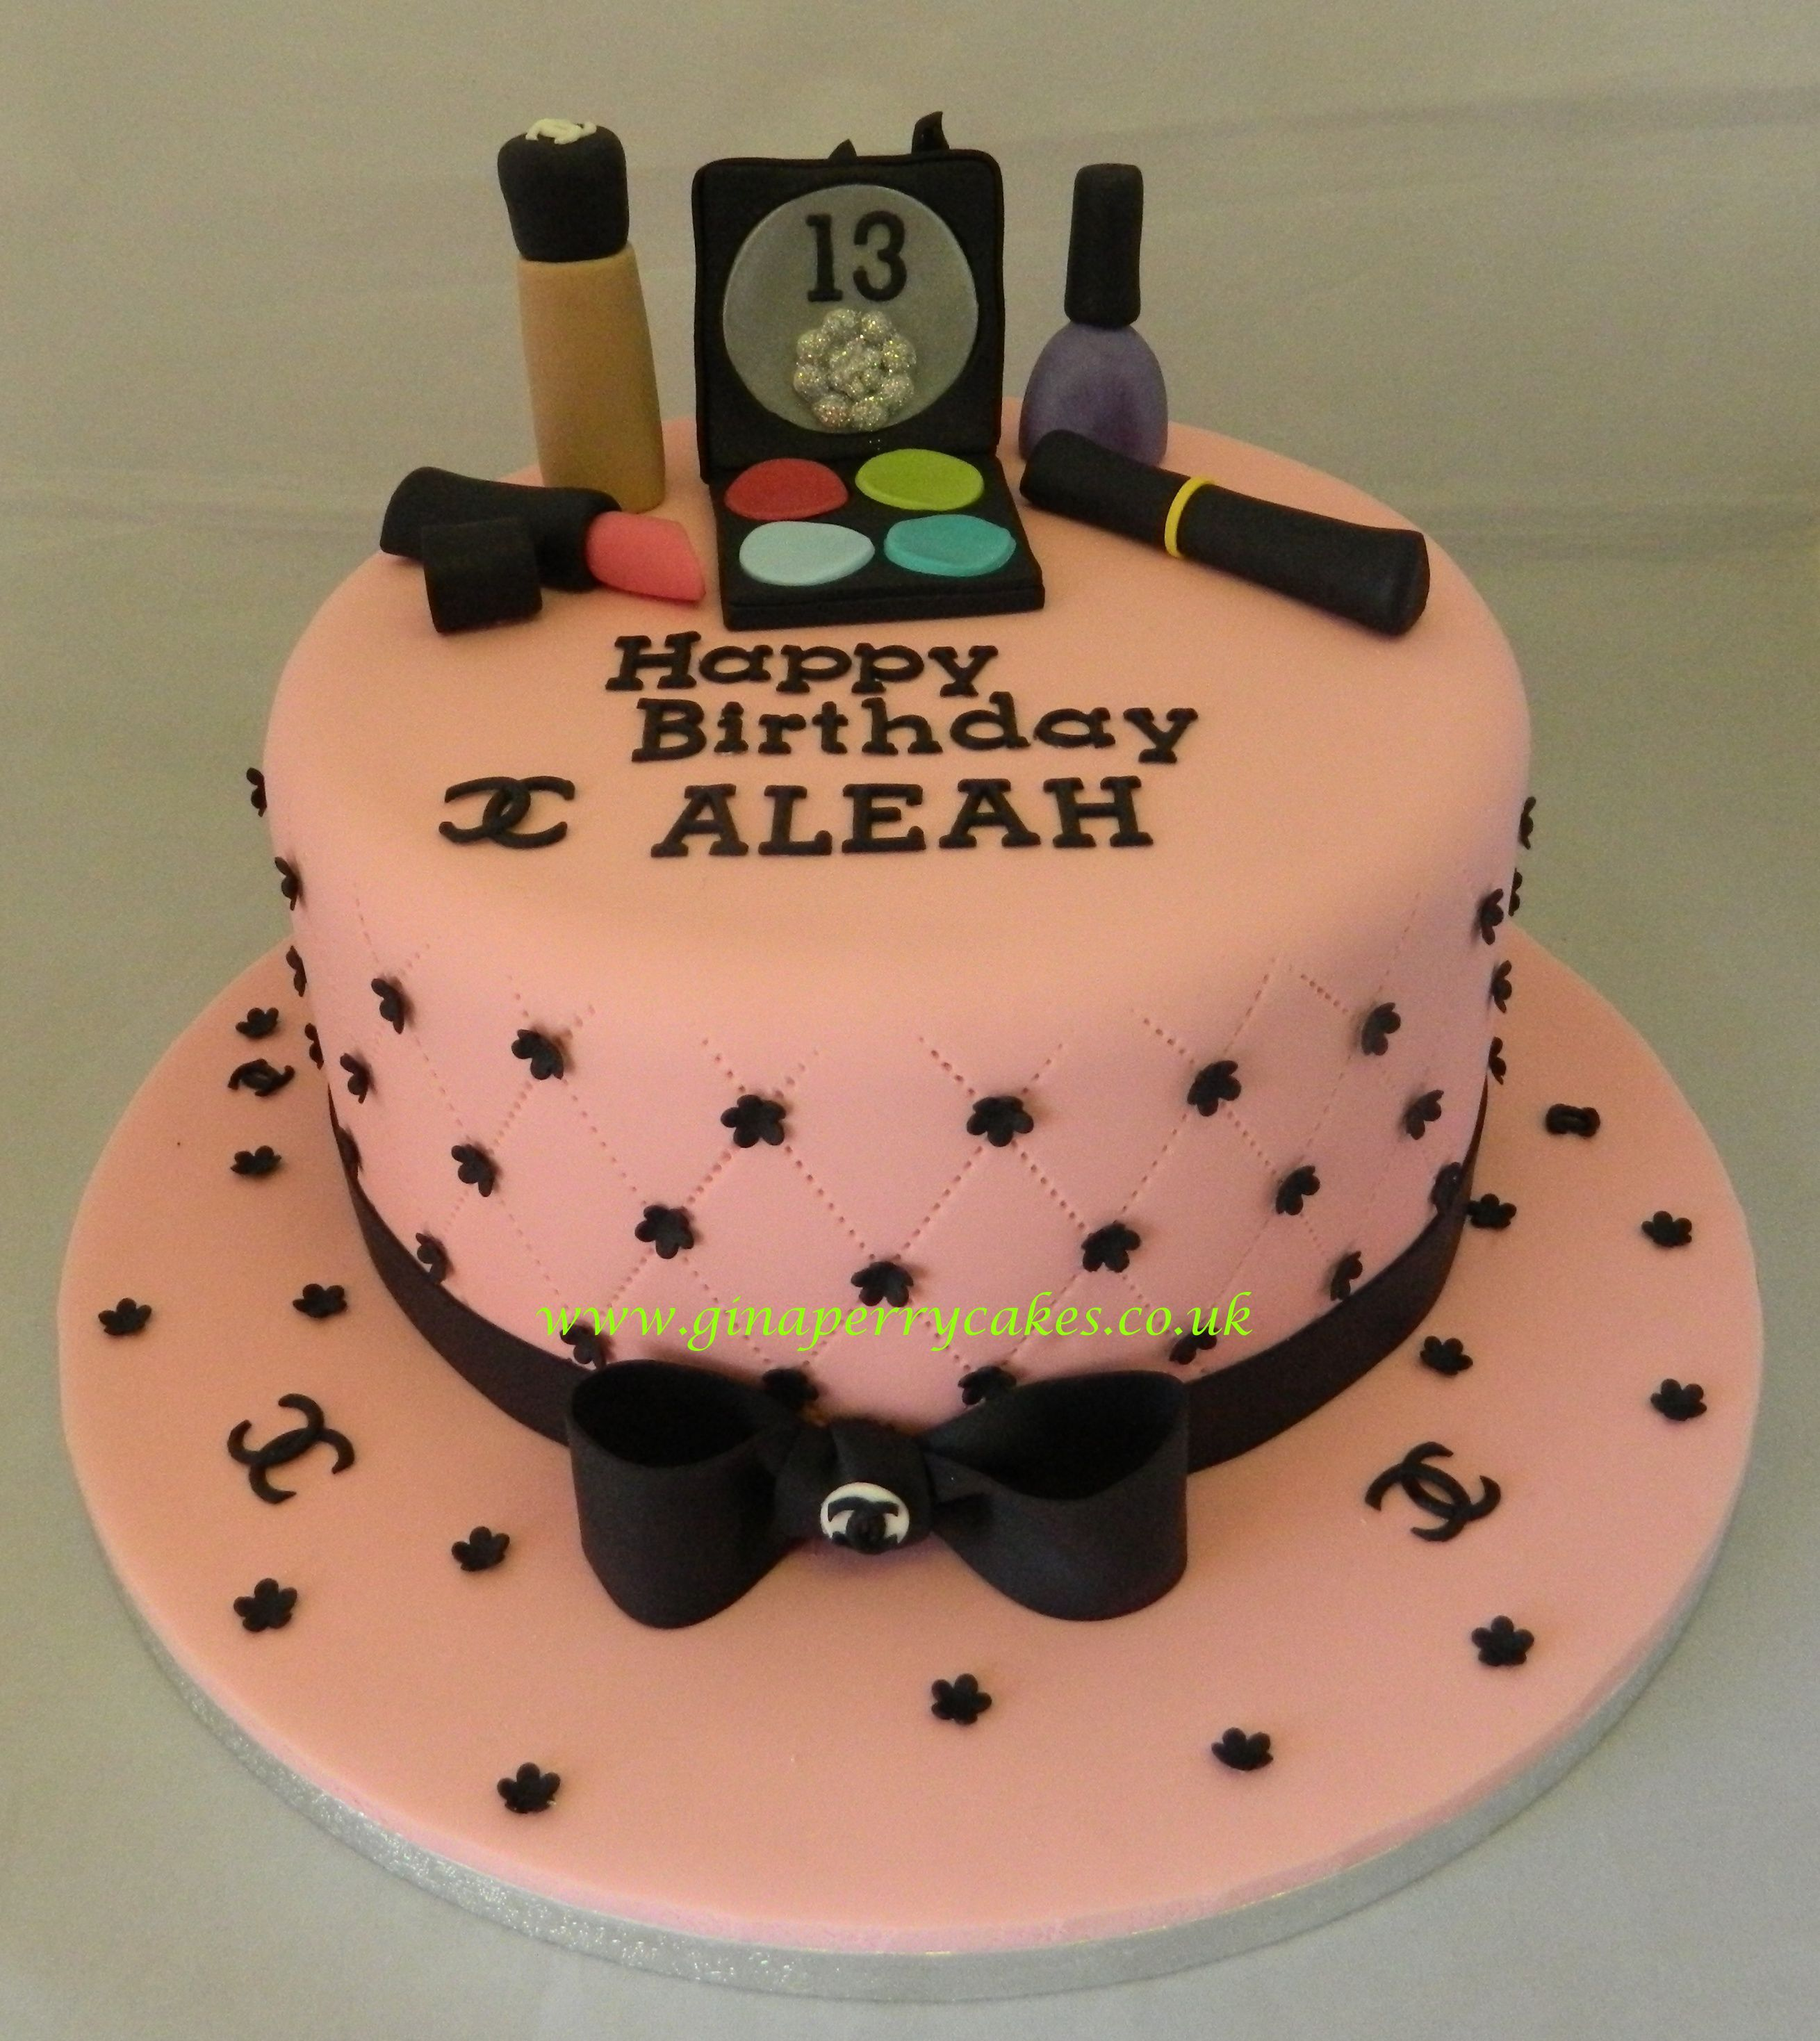 Cake Designs For 13 Year Old Birthday : Make up themed birthday cake for a 13 year old Bri ...